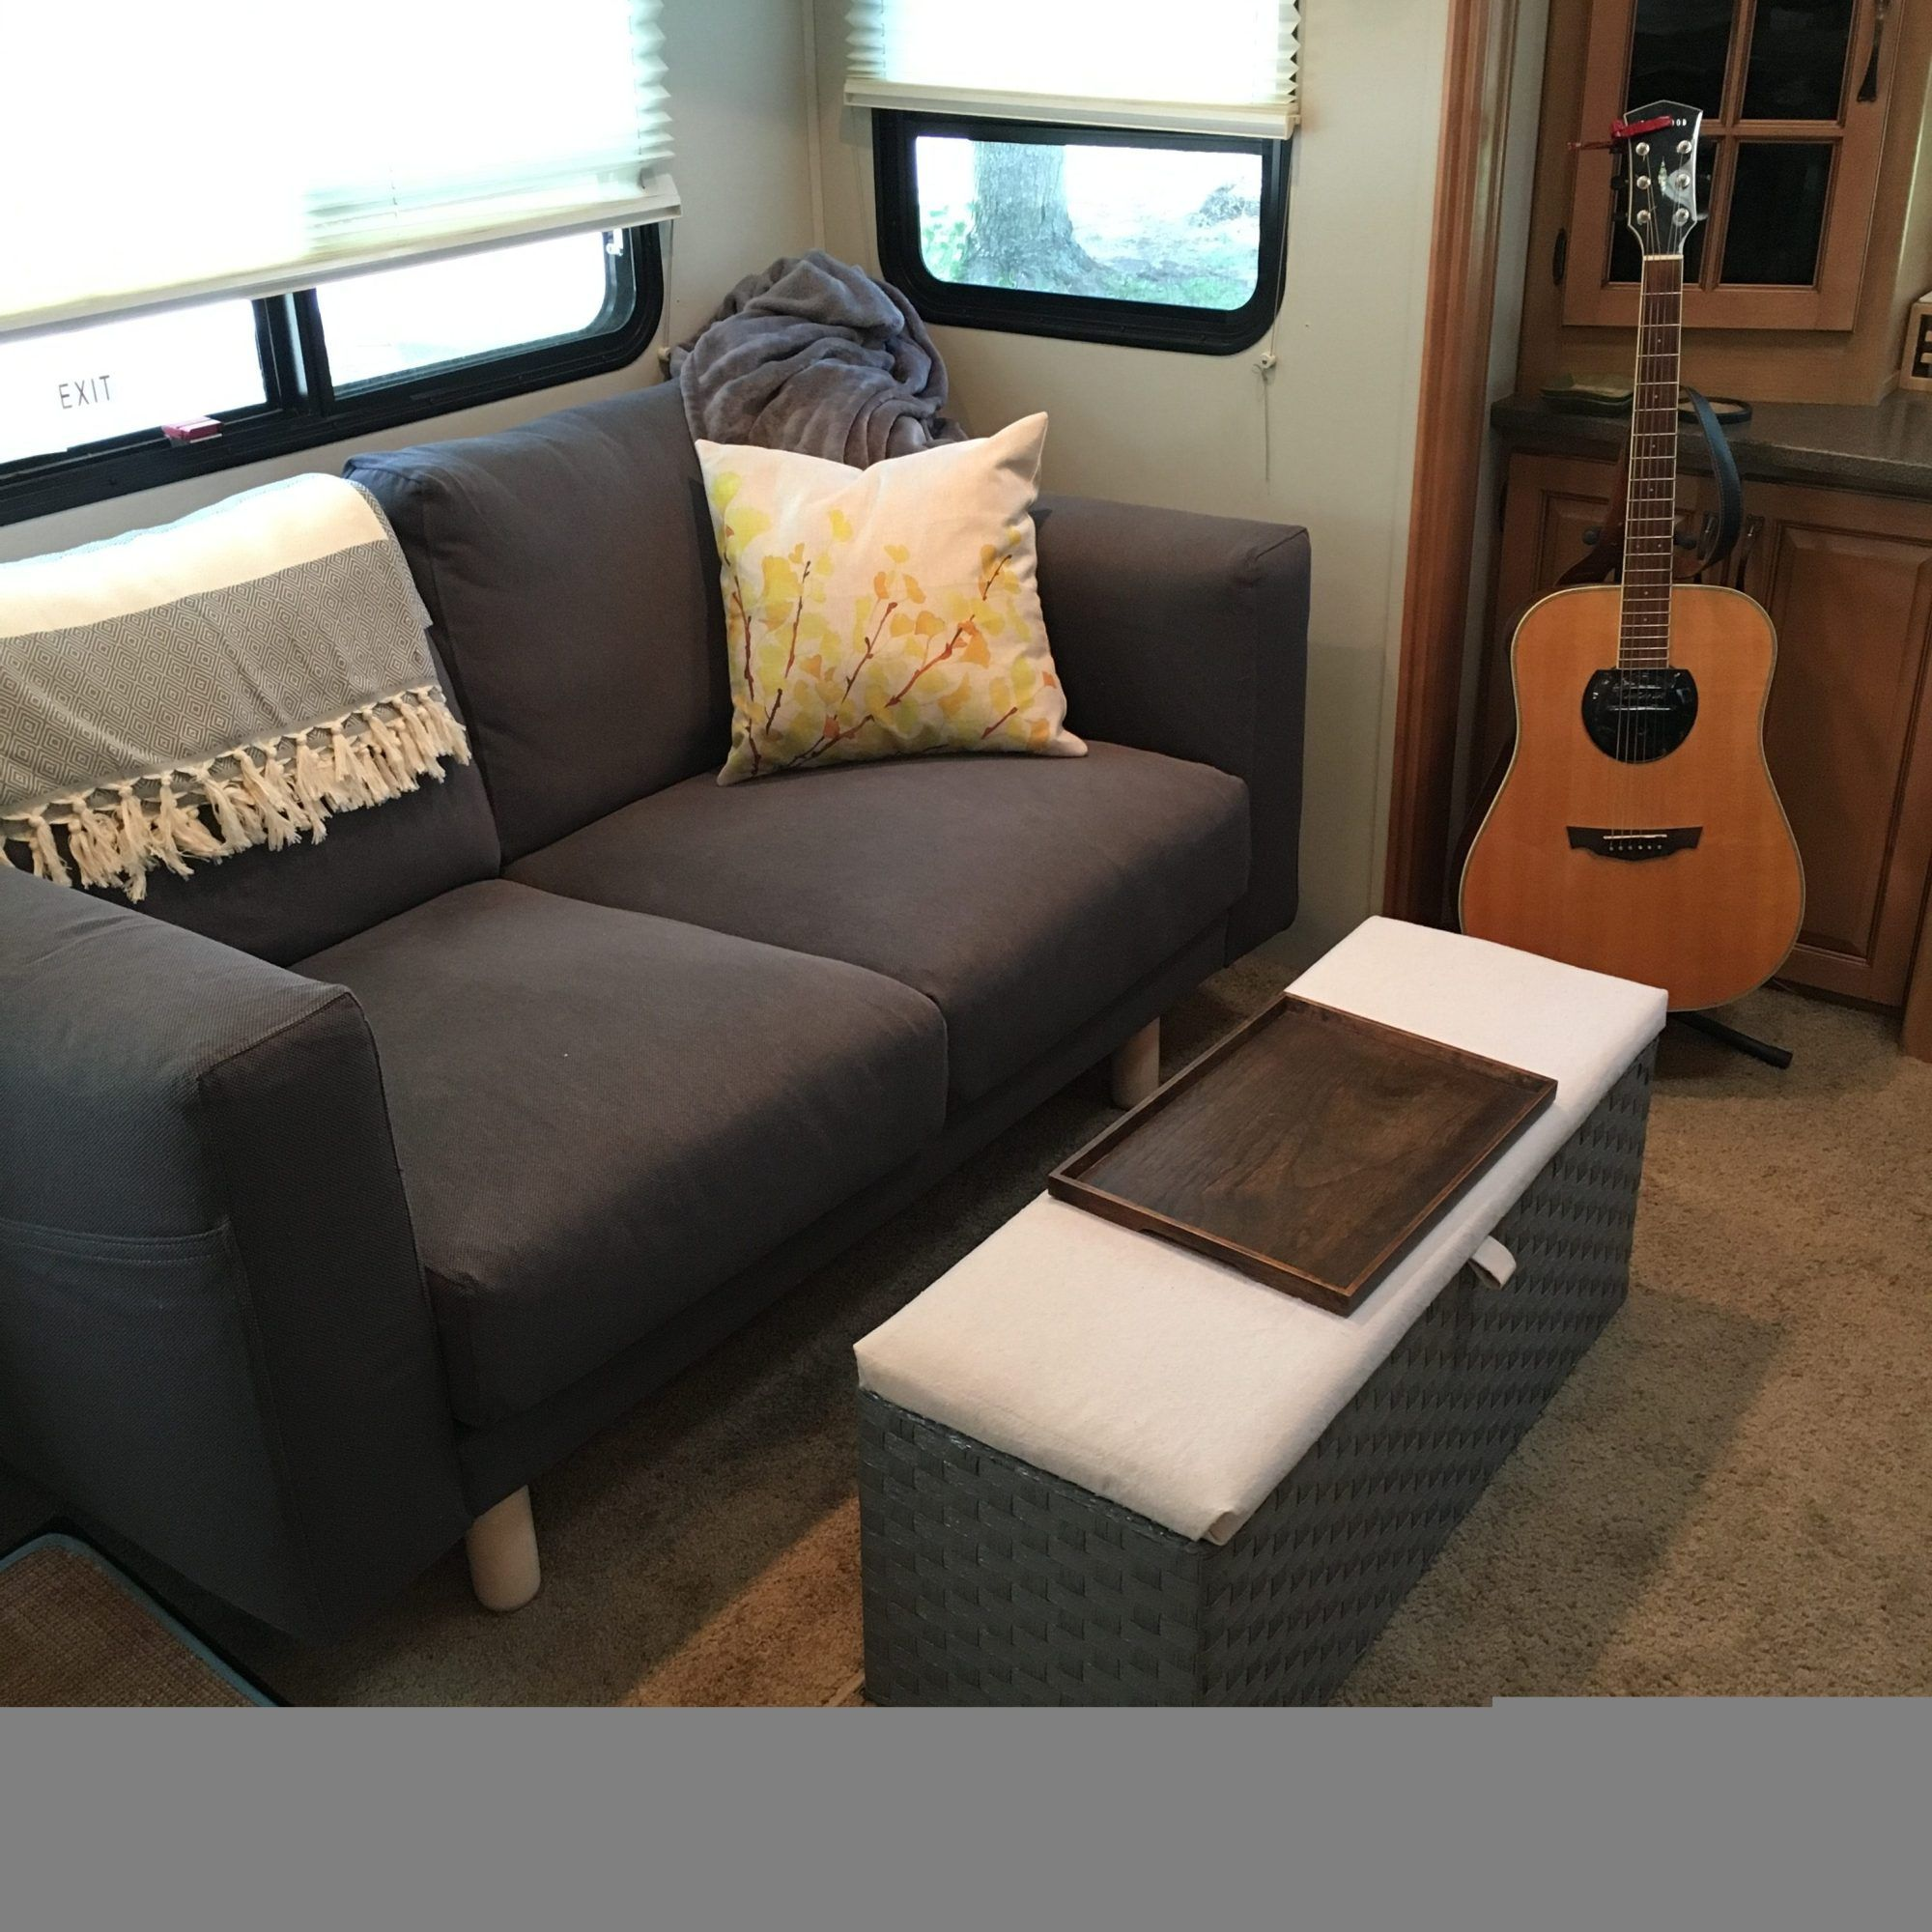 Rv Sofa Bed Replacement Ideas W Pictures In 2020 Rv Furniture